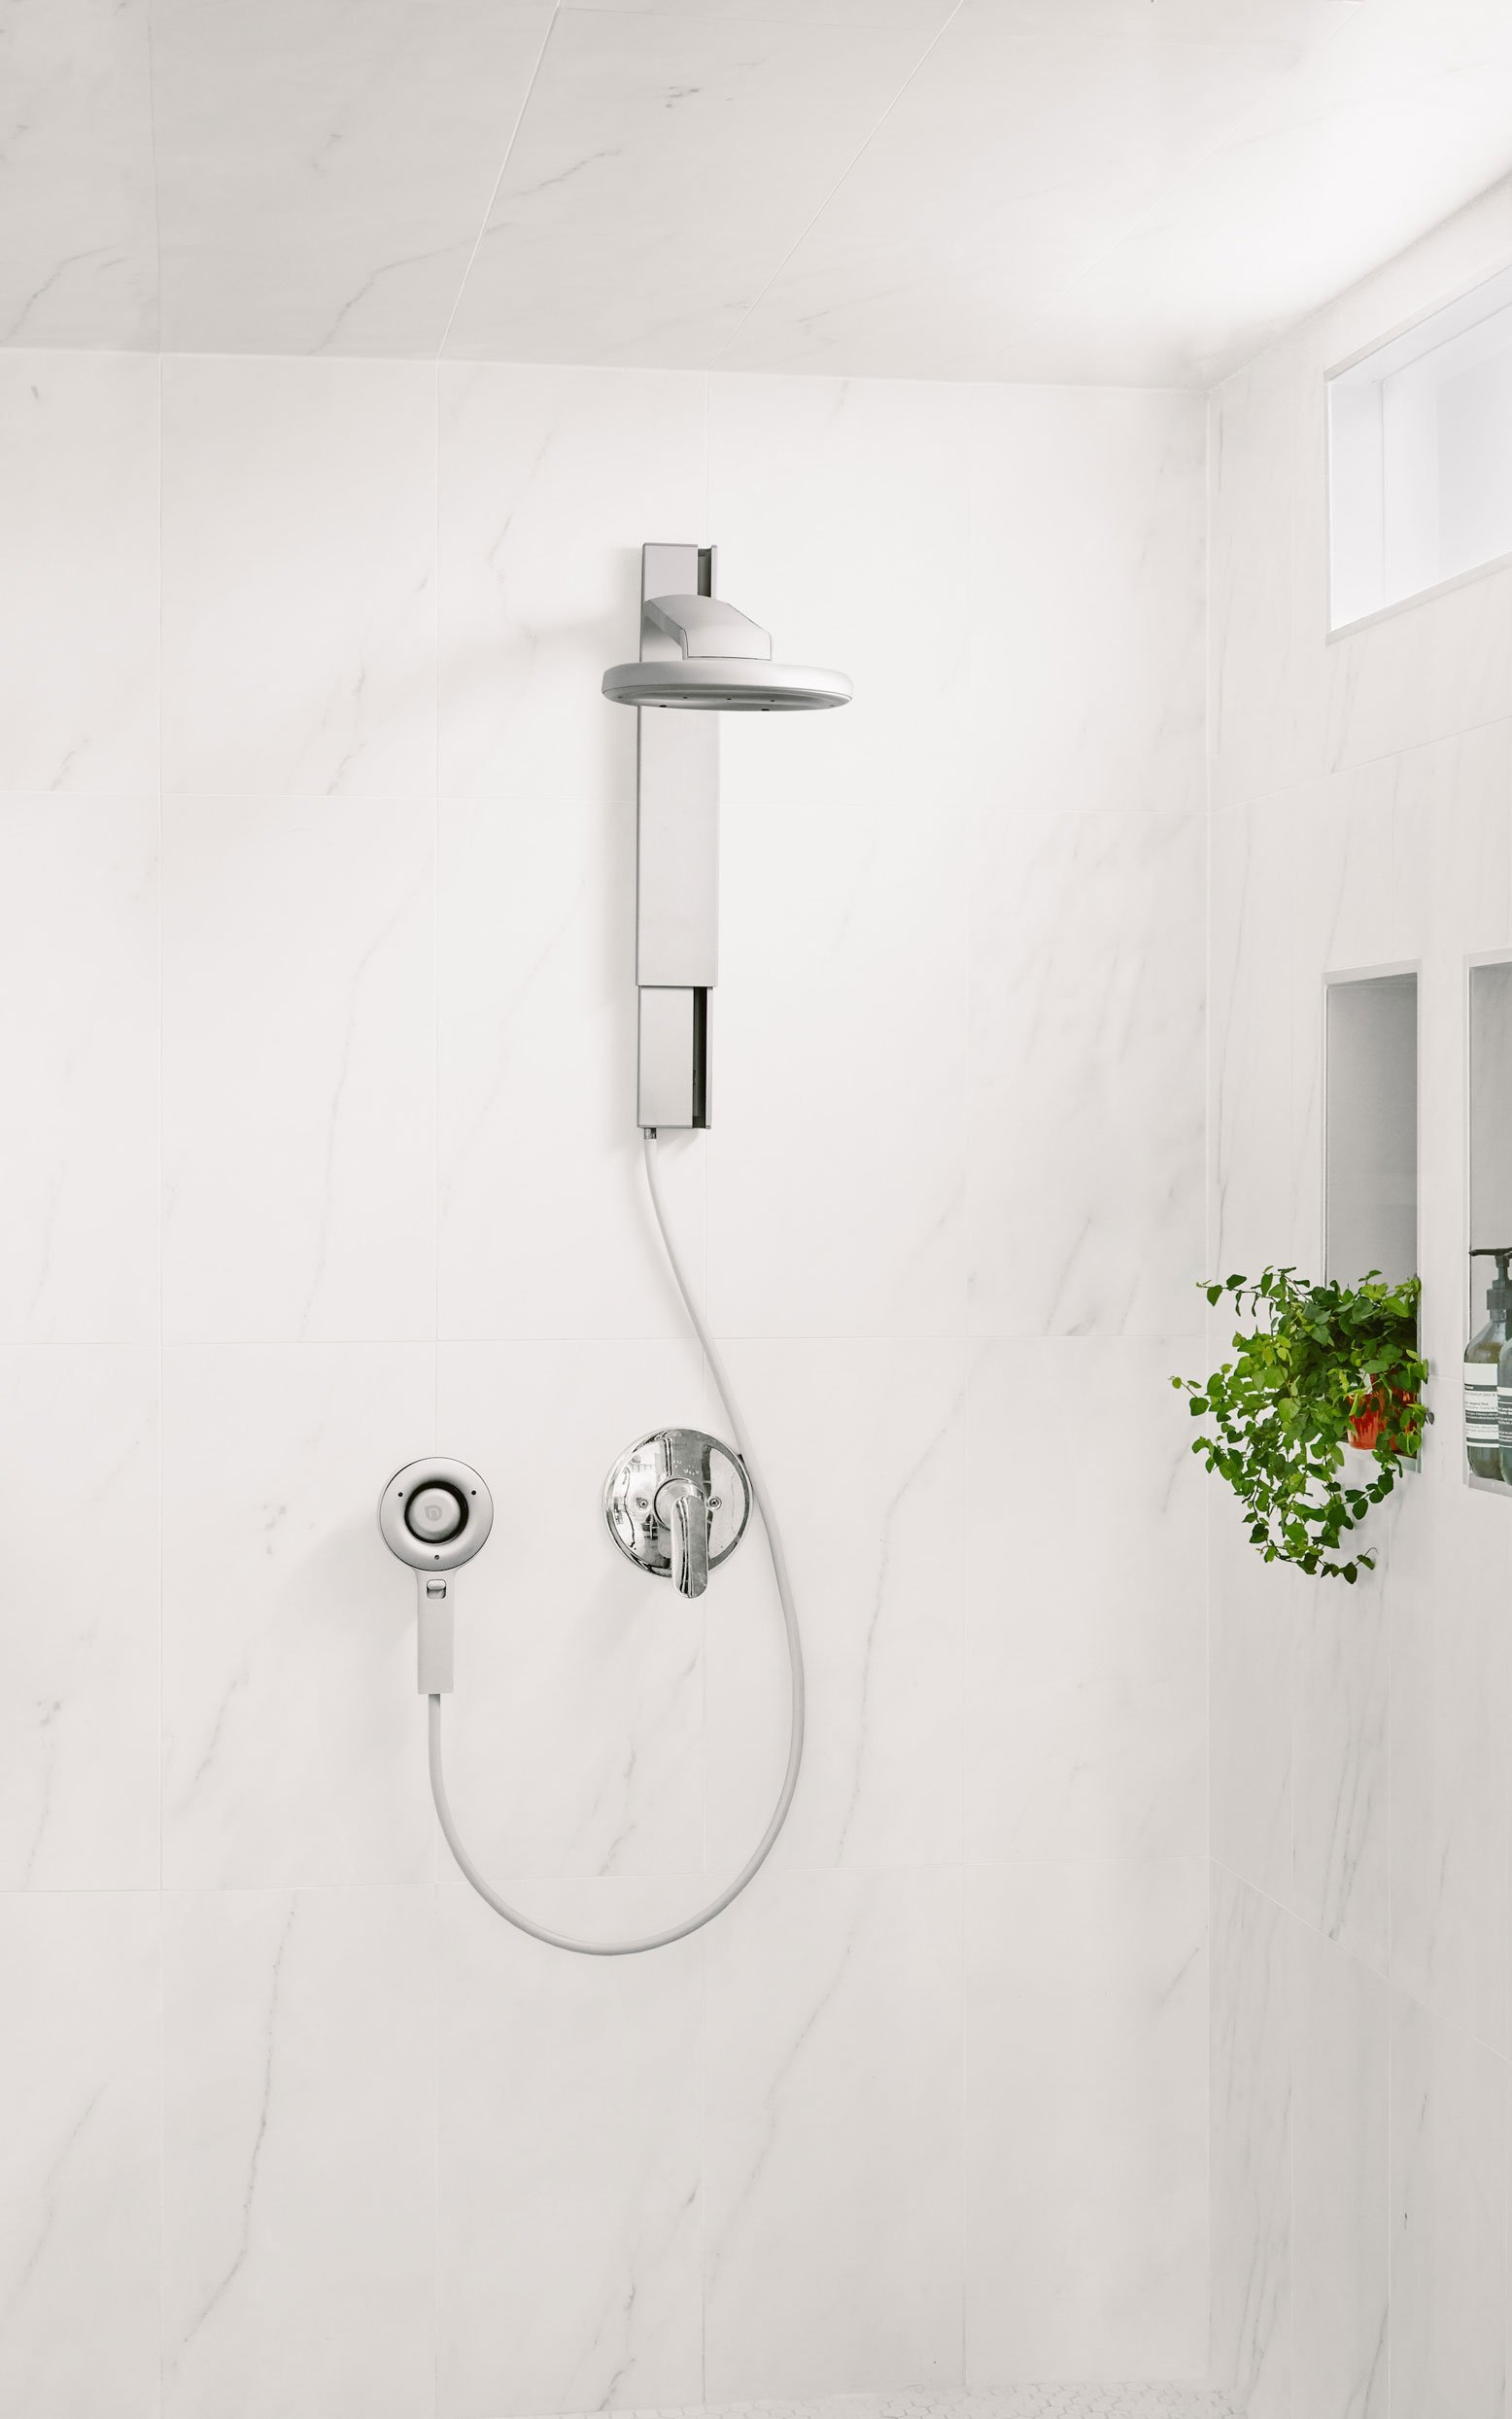 Nebia Spa Shower: Luxury Water Innovation. Sustainable Atomizing Shower System with 10'' Head, Handheld Wand, Adjustable Height. Award Winning Design, Aluminum, Easy DIY Install. Made in USA. by Nebia (Image #4)